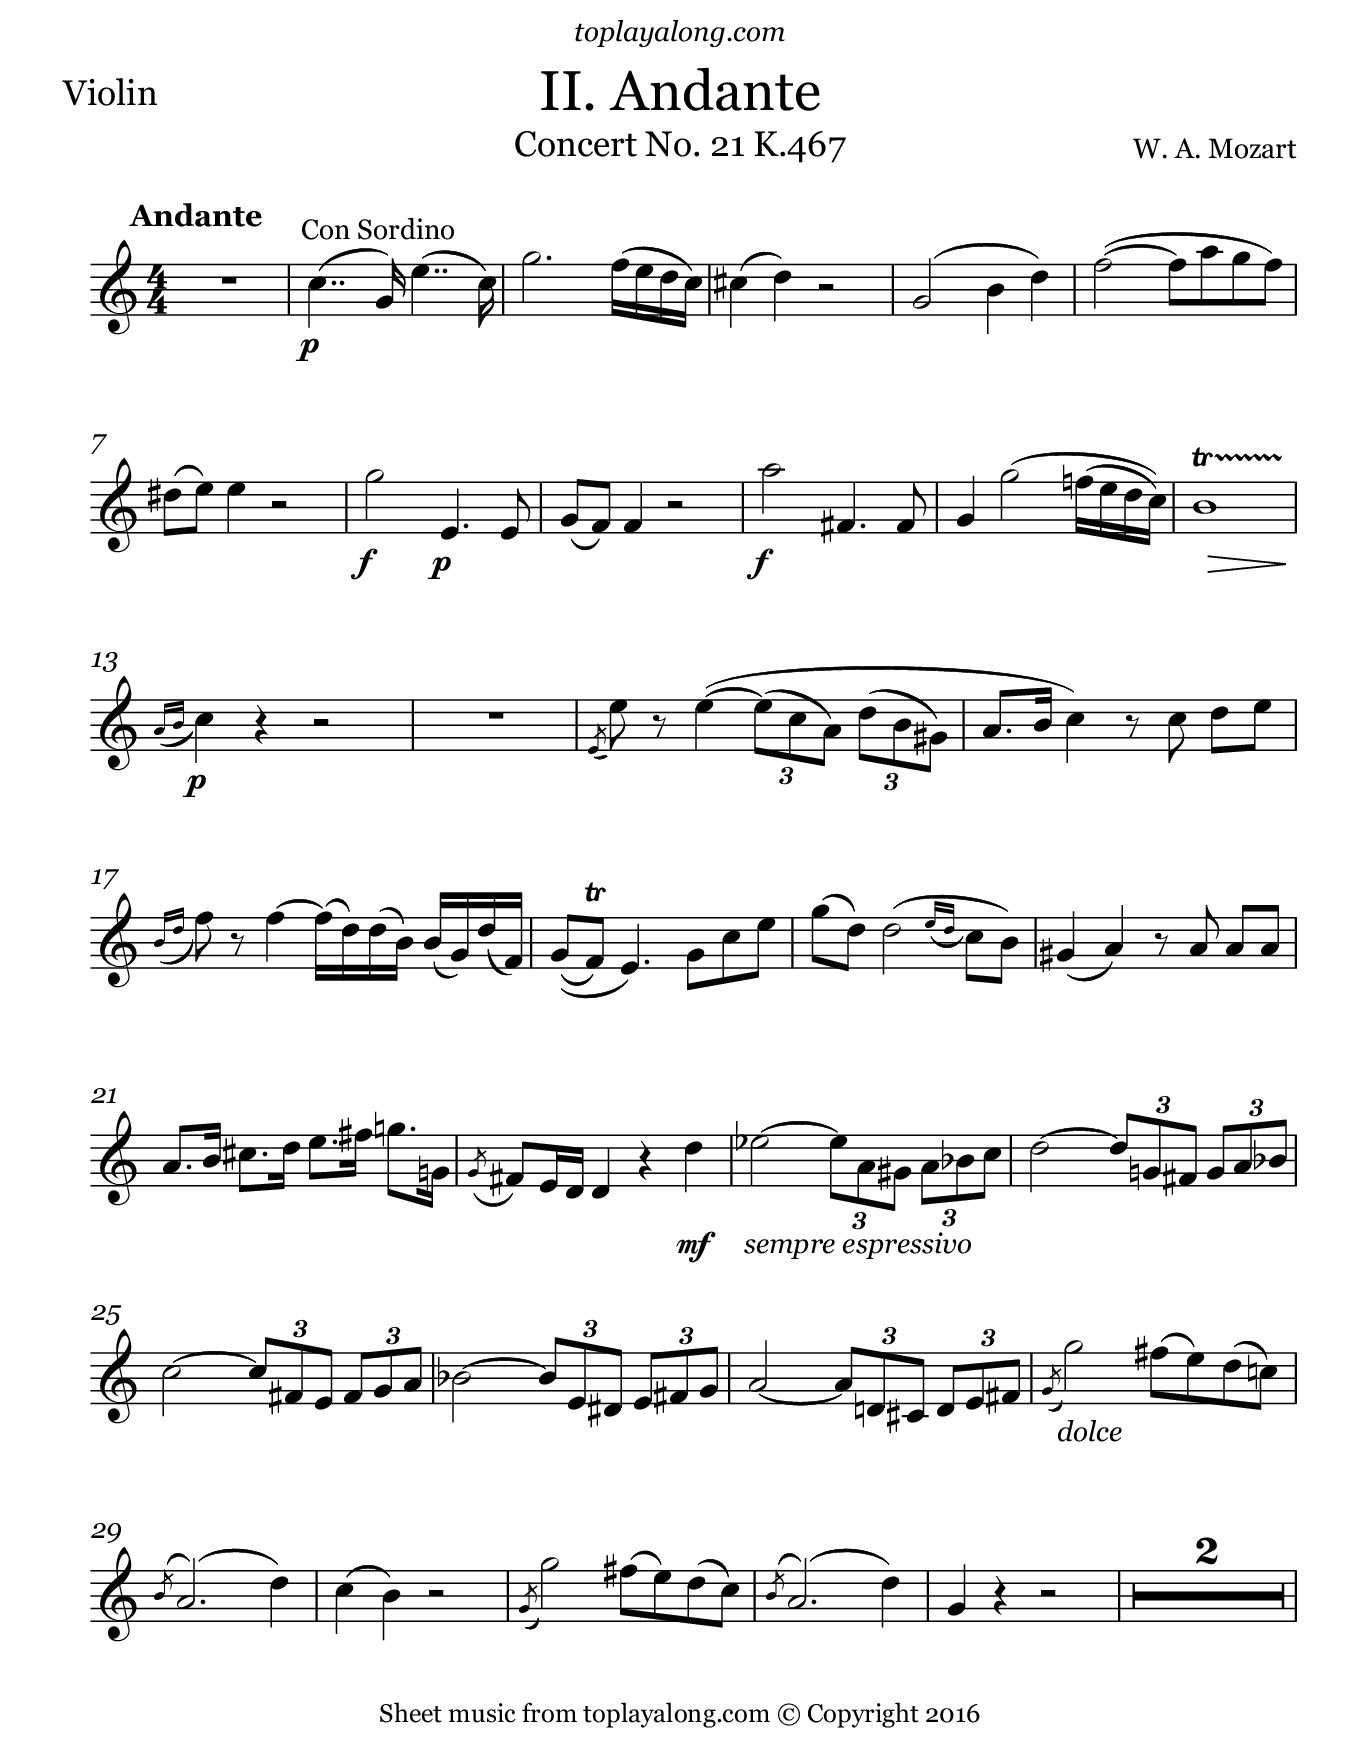 Concerto No. 21 K.467 (2nd Mvt. Theme) by Mozart. Sheet music for Violin, page 1.